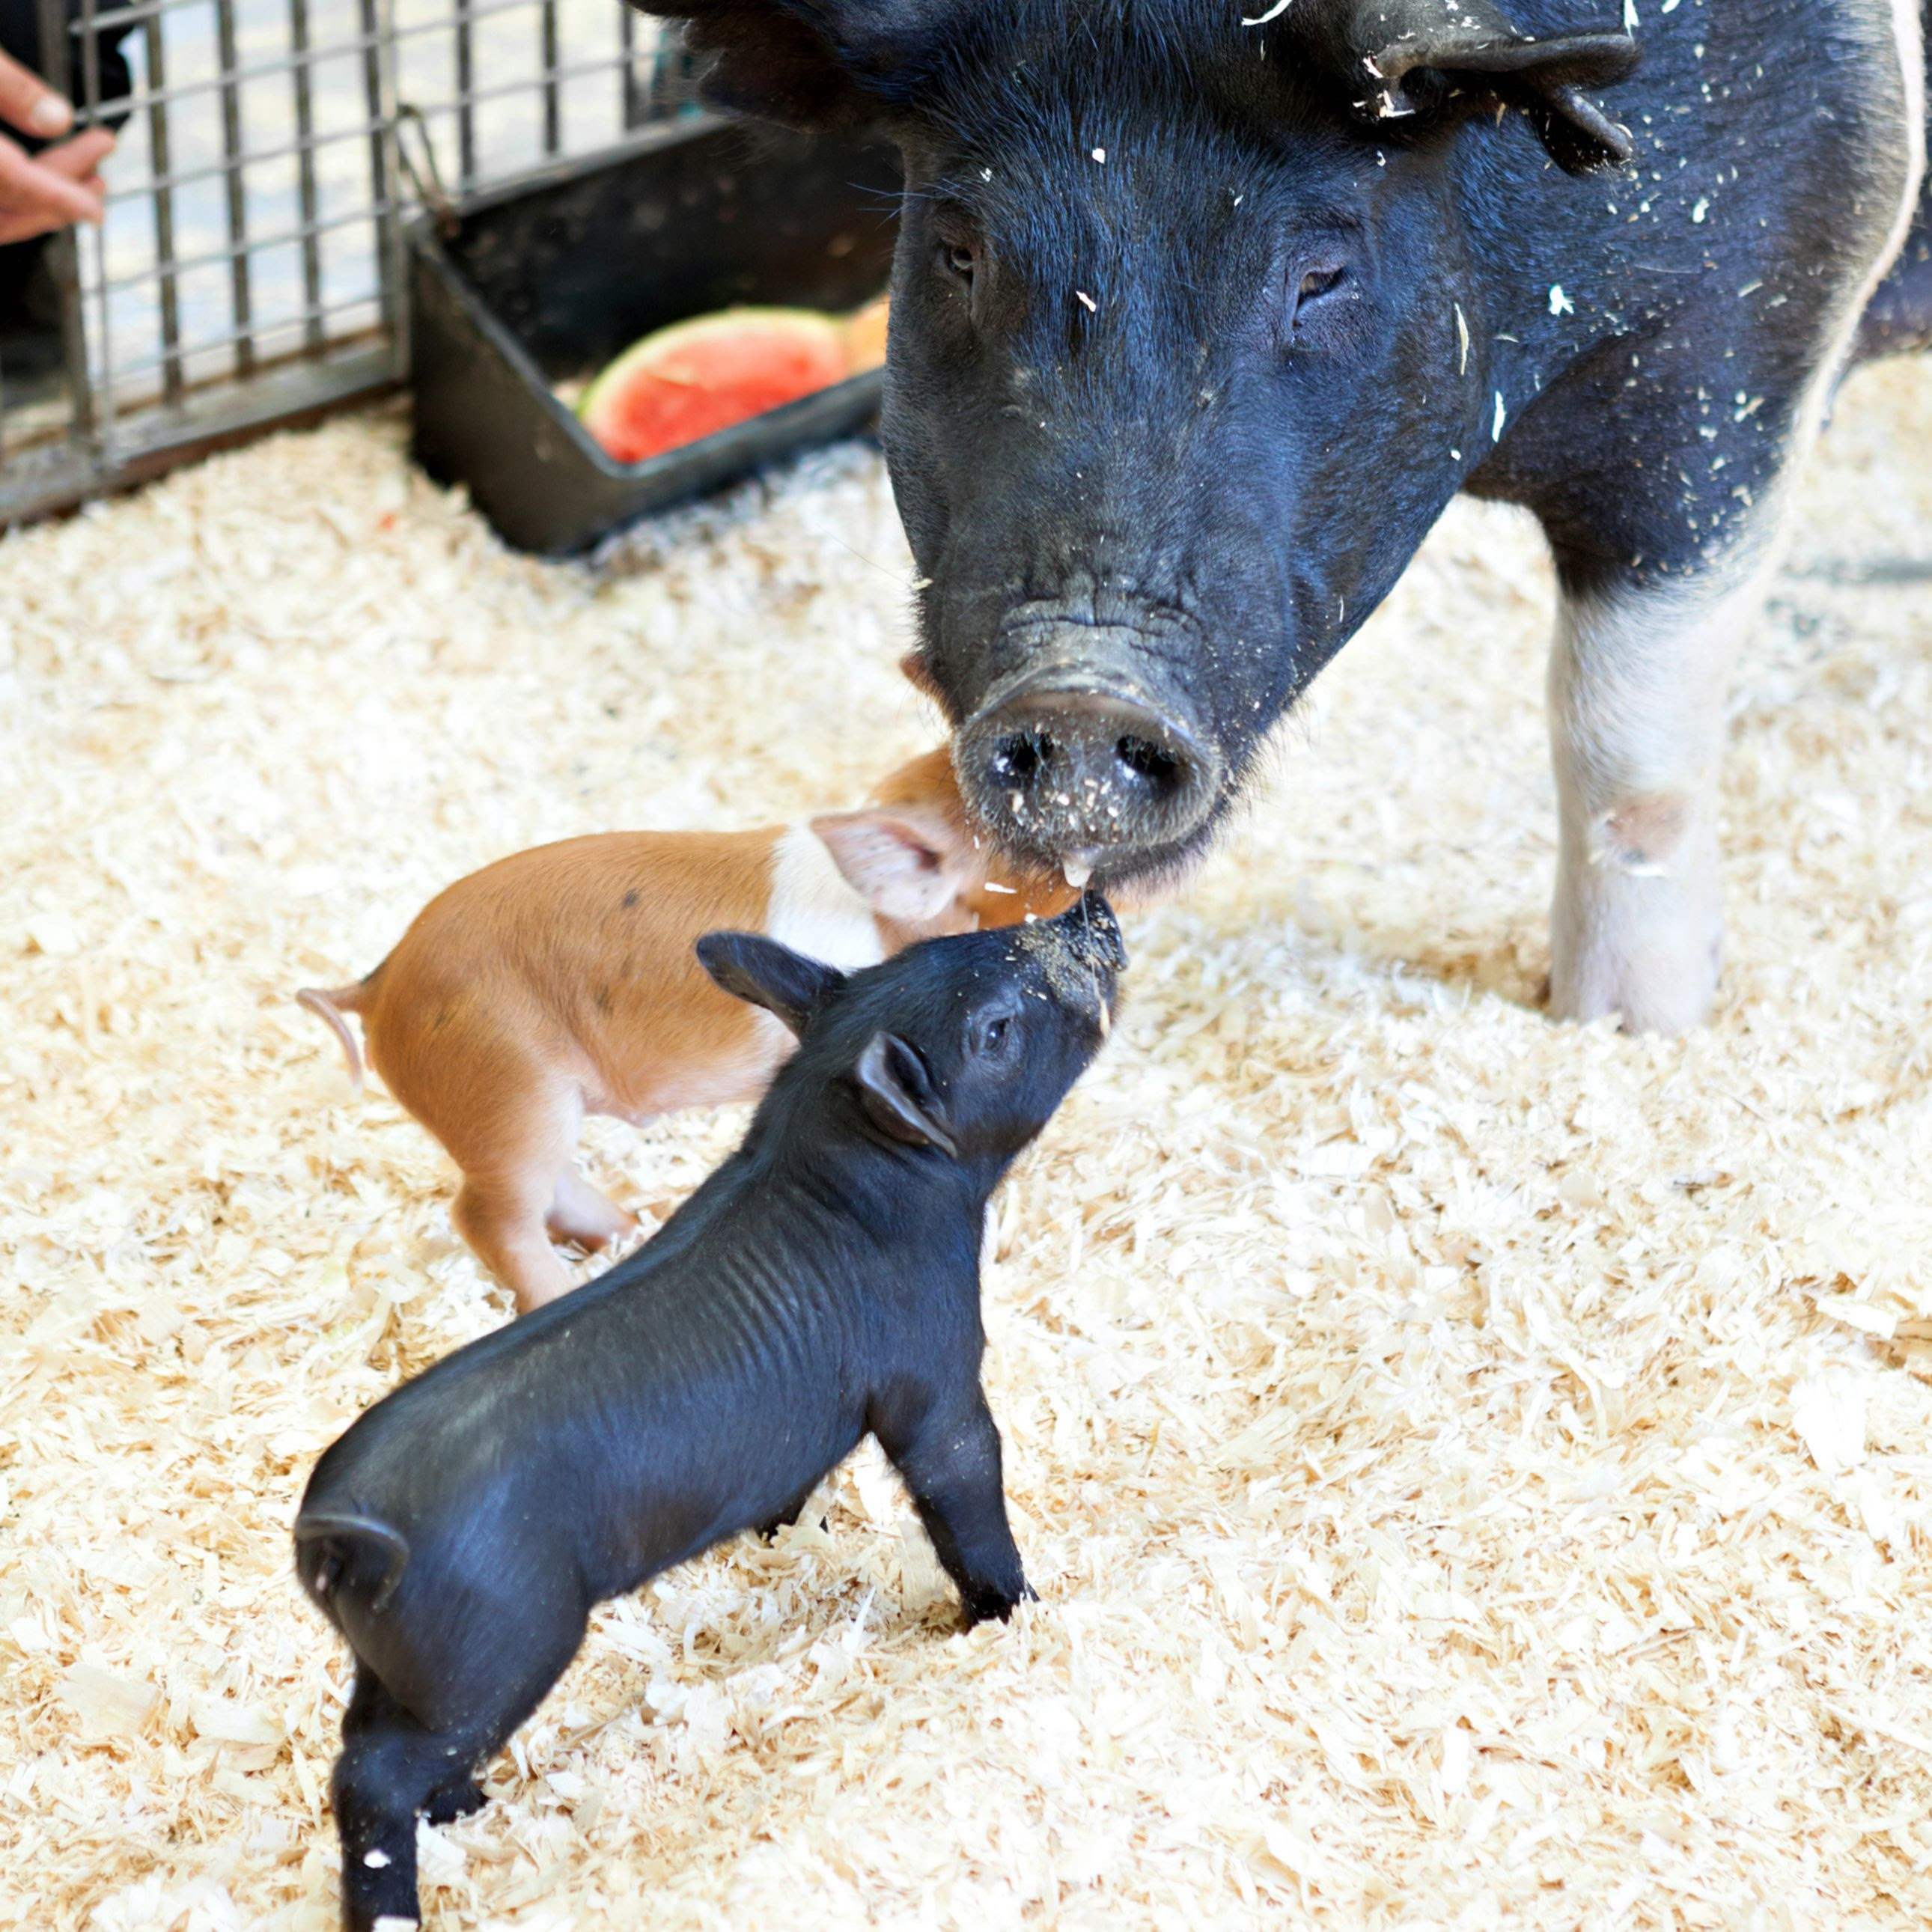 Mother Pig and Piglets